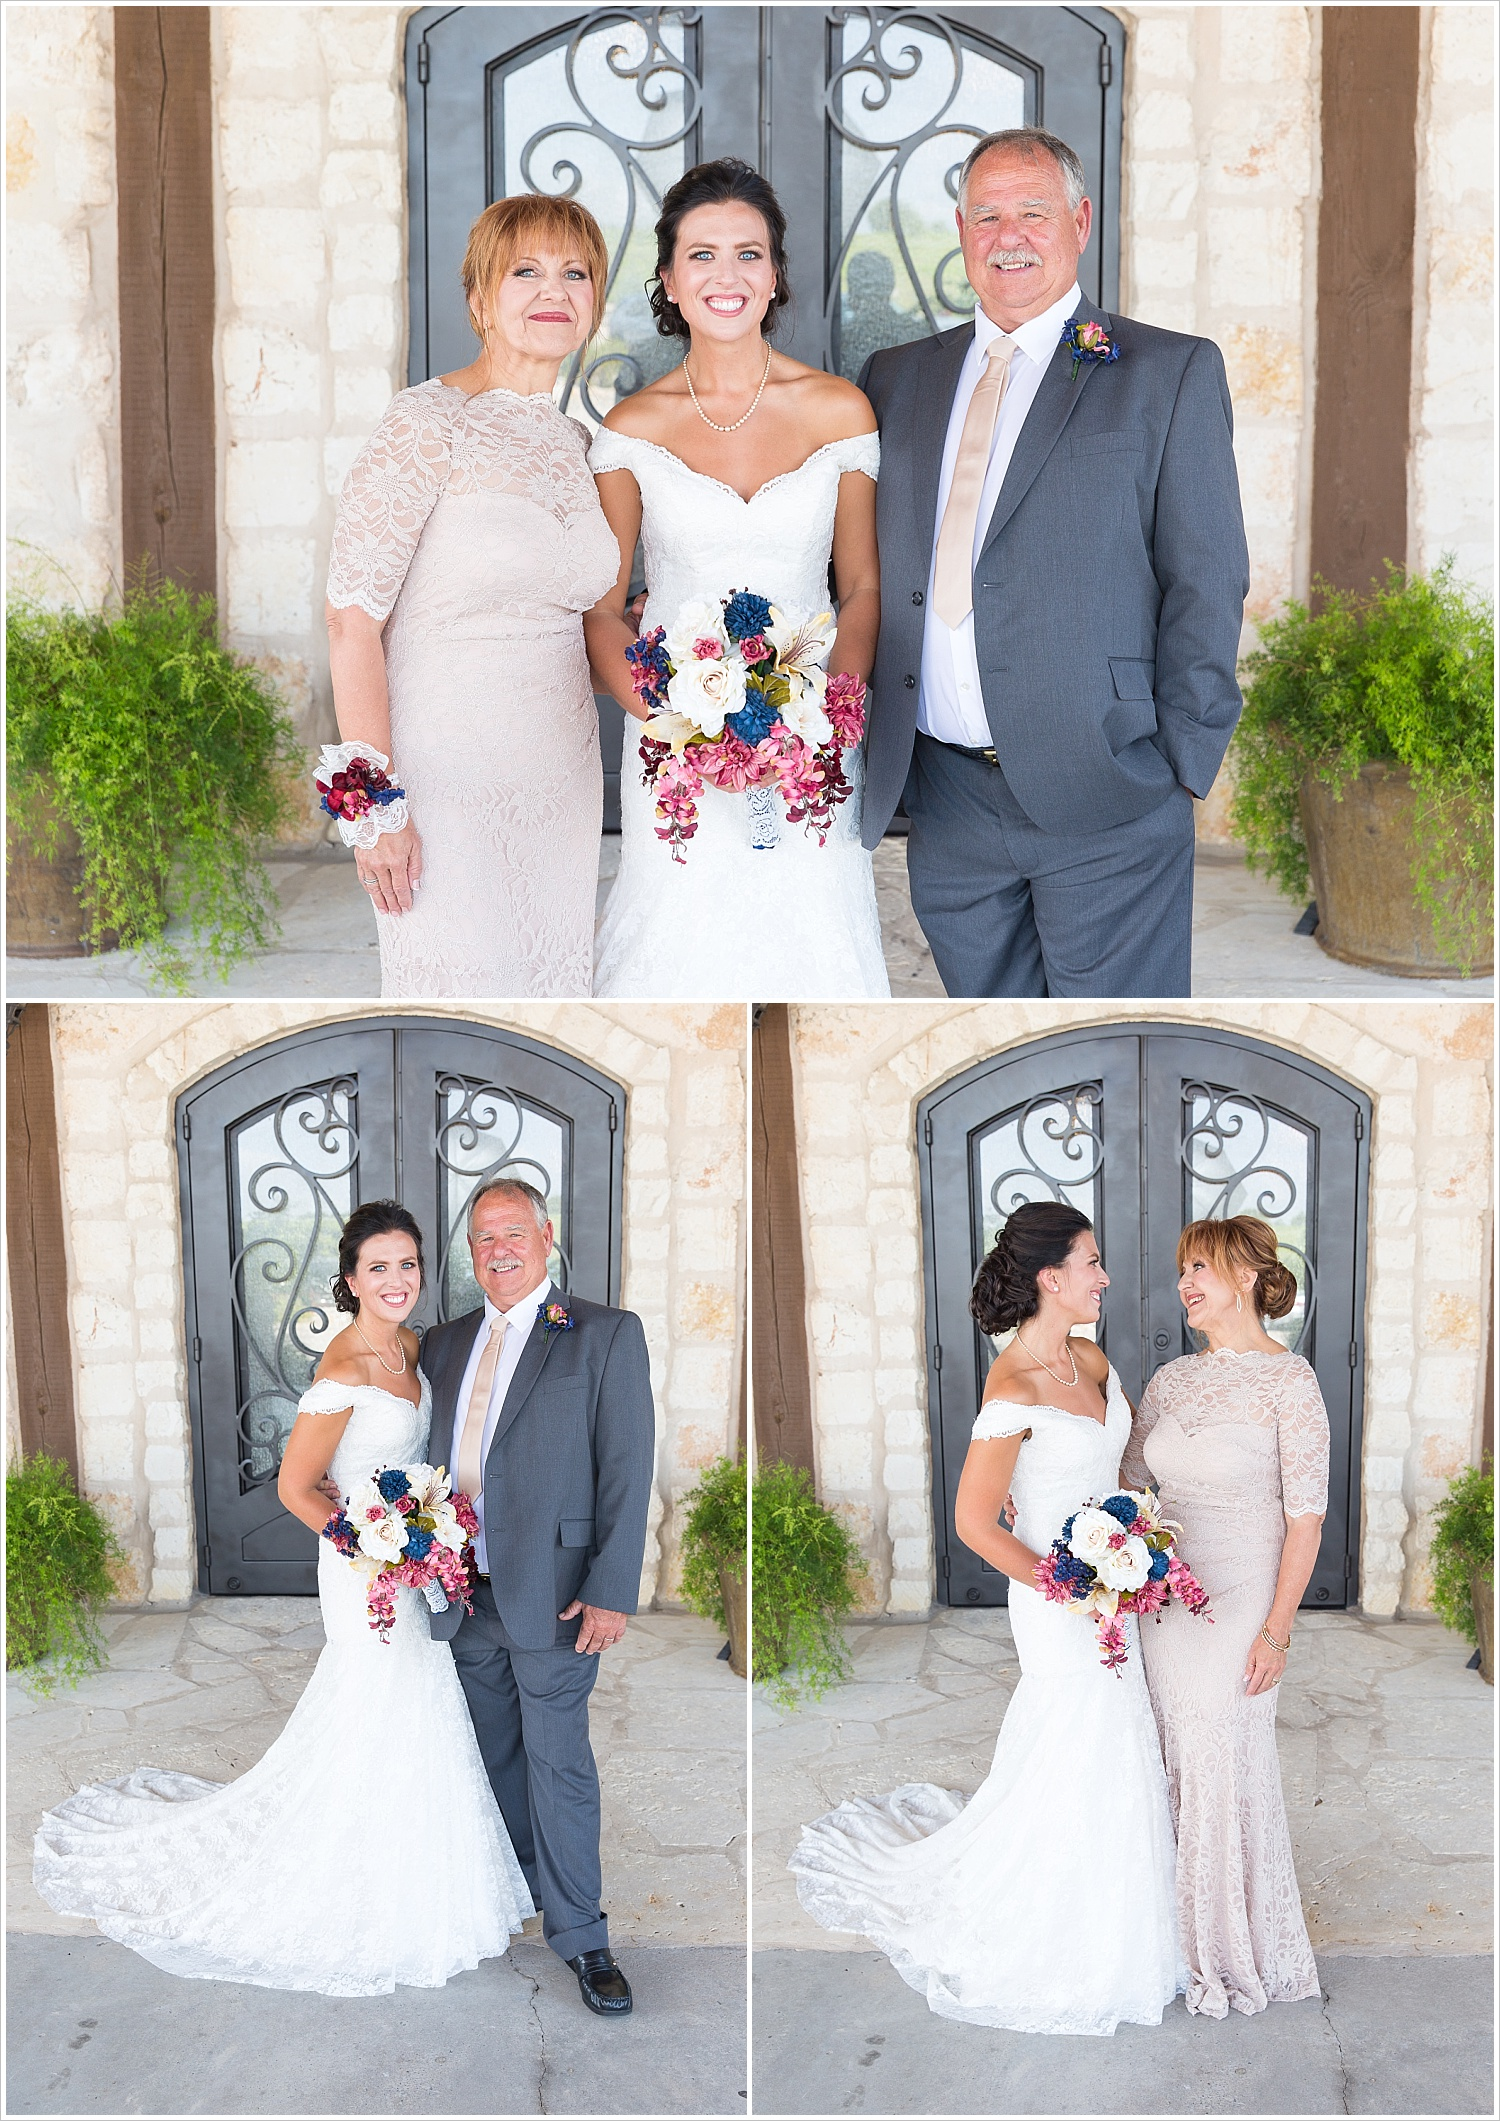 Bride poses with her mother and father, summer blush and navy wedding at Stone Hall at The Springs in McKinney, Texas, Jason & Melaina Photography, www.jasonandmelaina.com